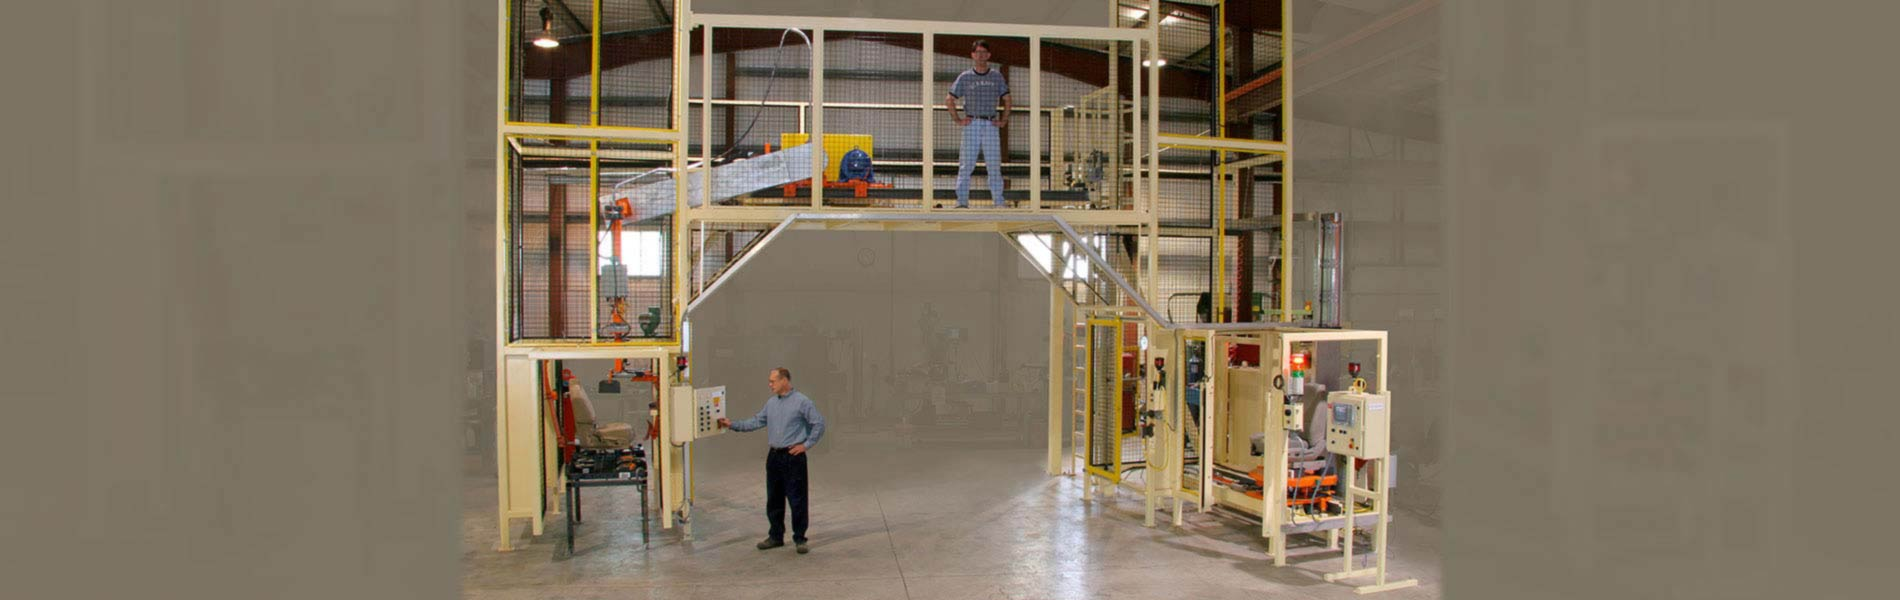 Material Handling Automation manufactured by Givens Lifting Systems Inc. in the US